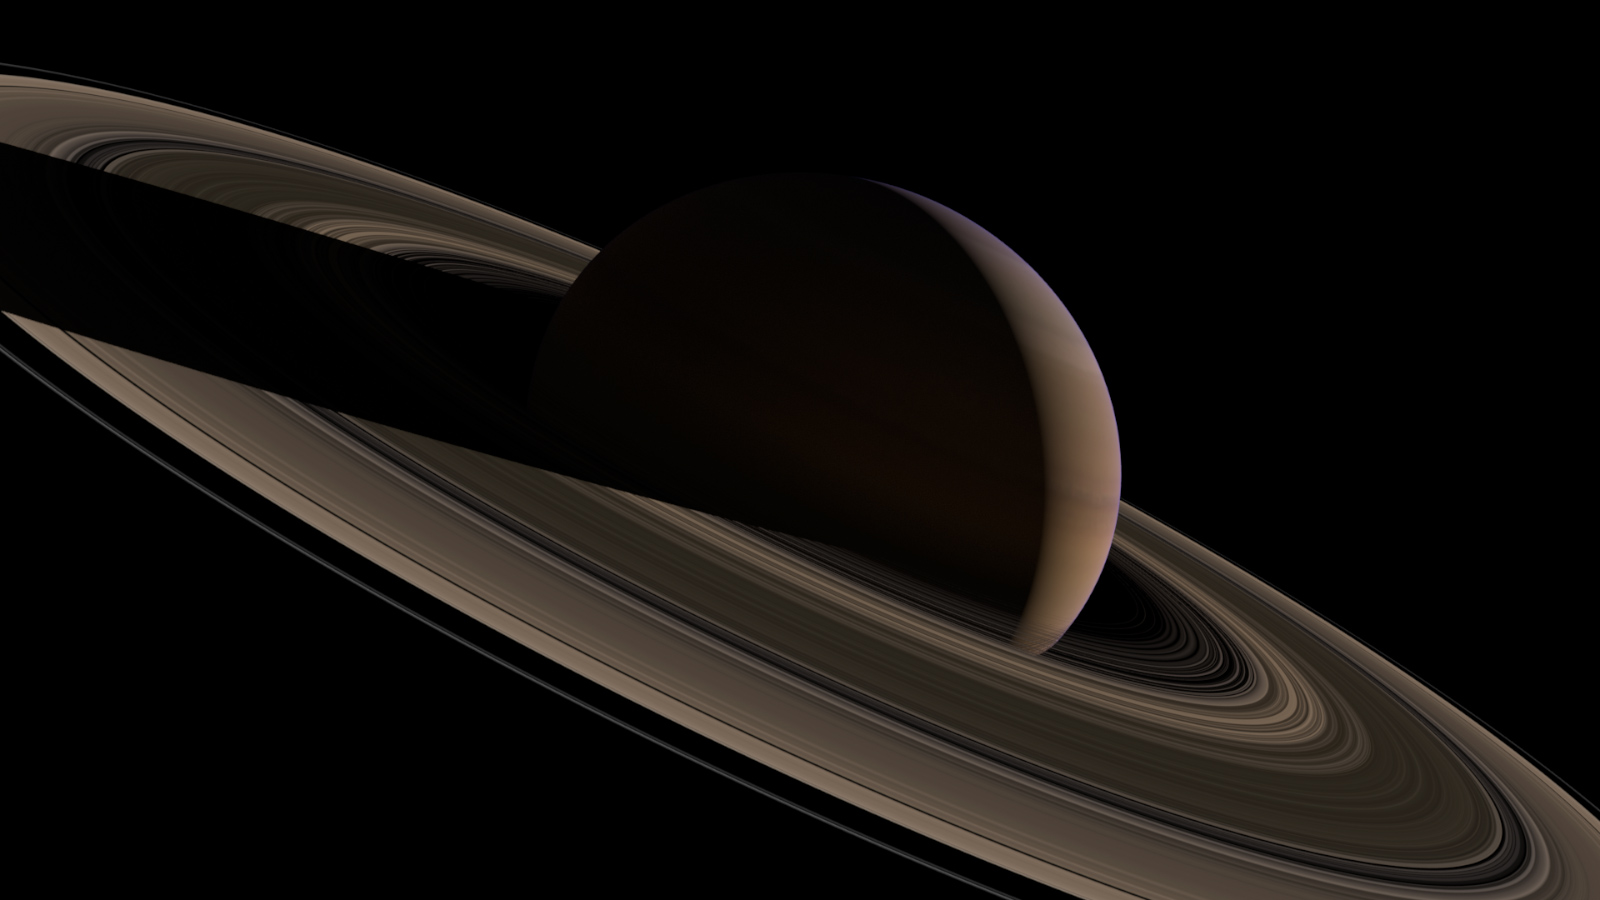 slide 4 - Sun rises over Saturn